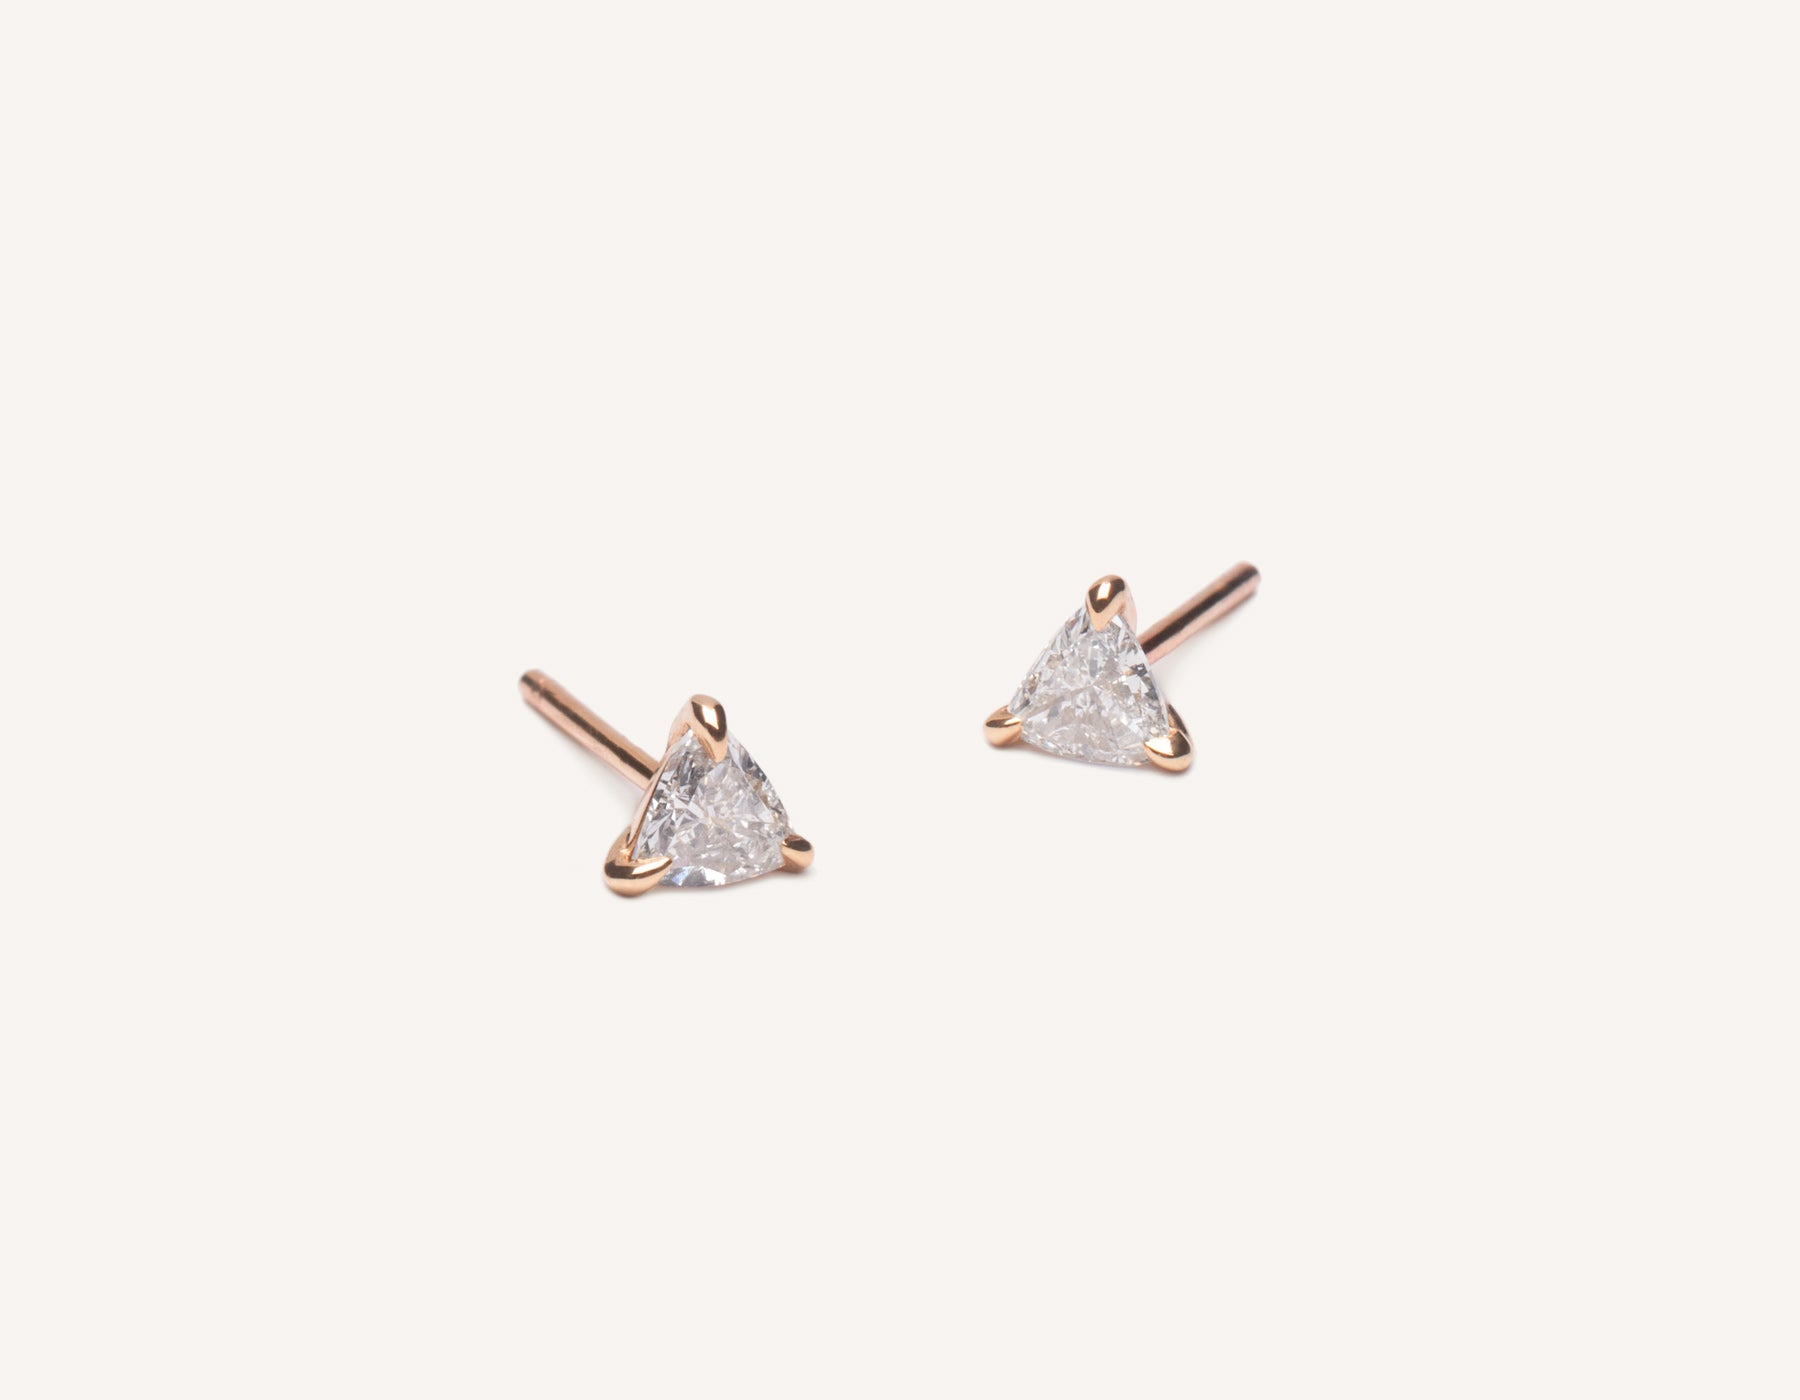 Modern delicate 14k solid gold .34 carat Trillion Diamond Earrings by Vrai & Oro, 14K Rose Gold